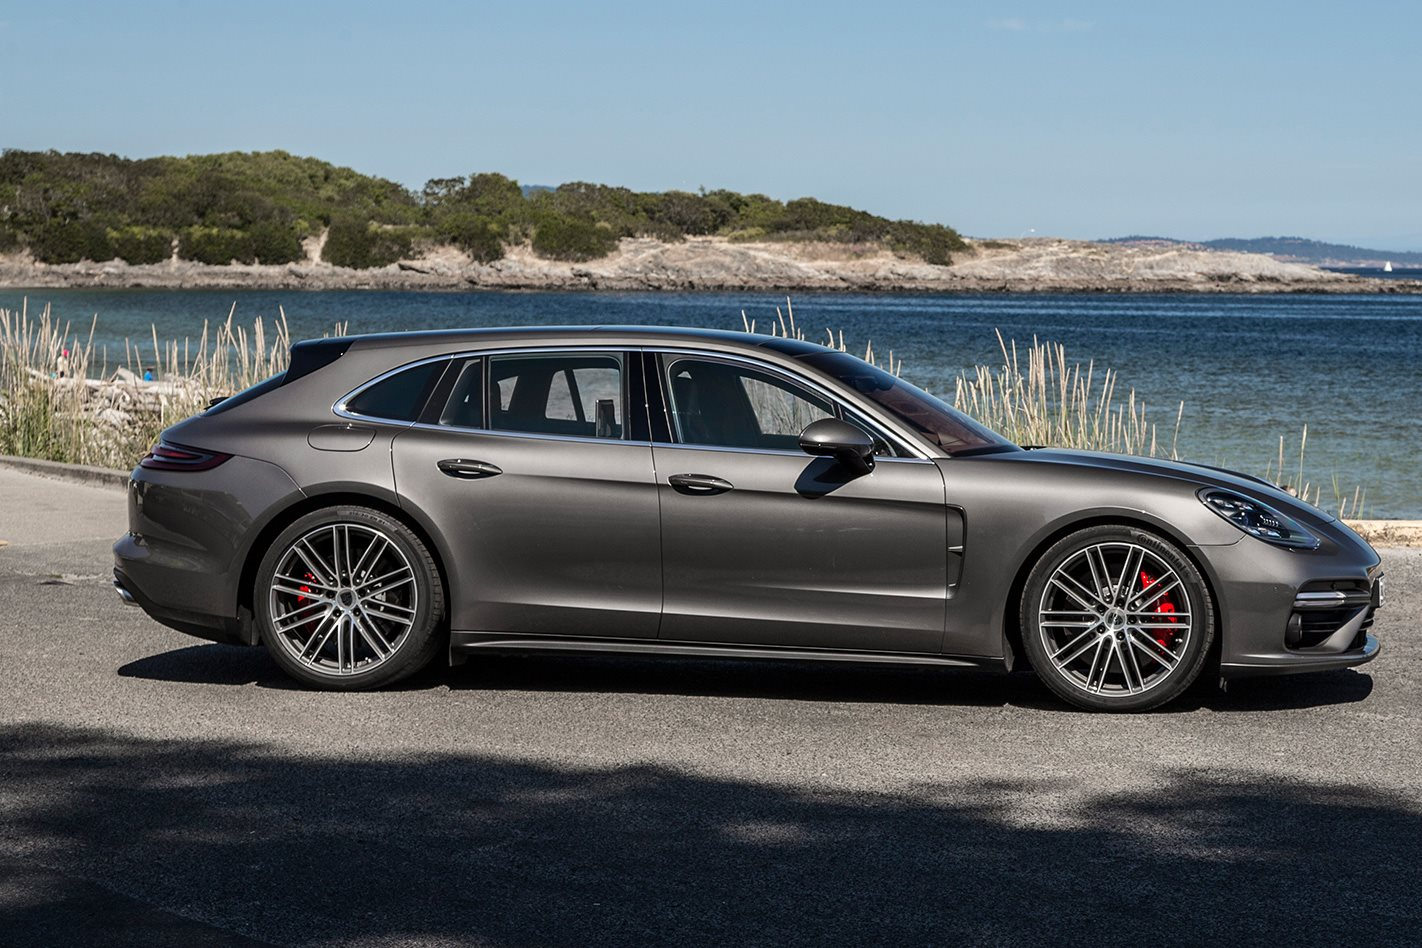 2017 Porsche Panamera Turbo Sport Turismo side profile